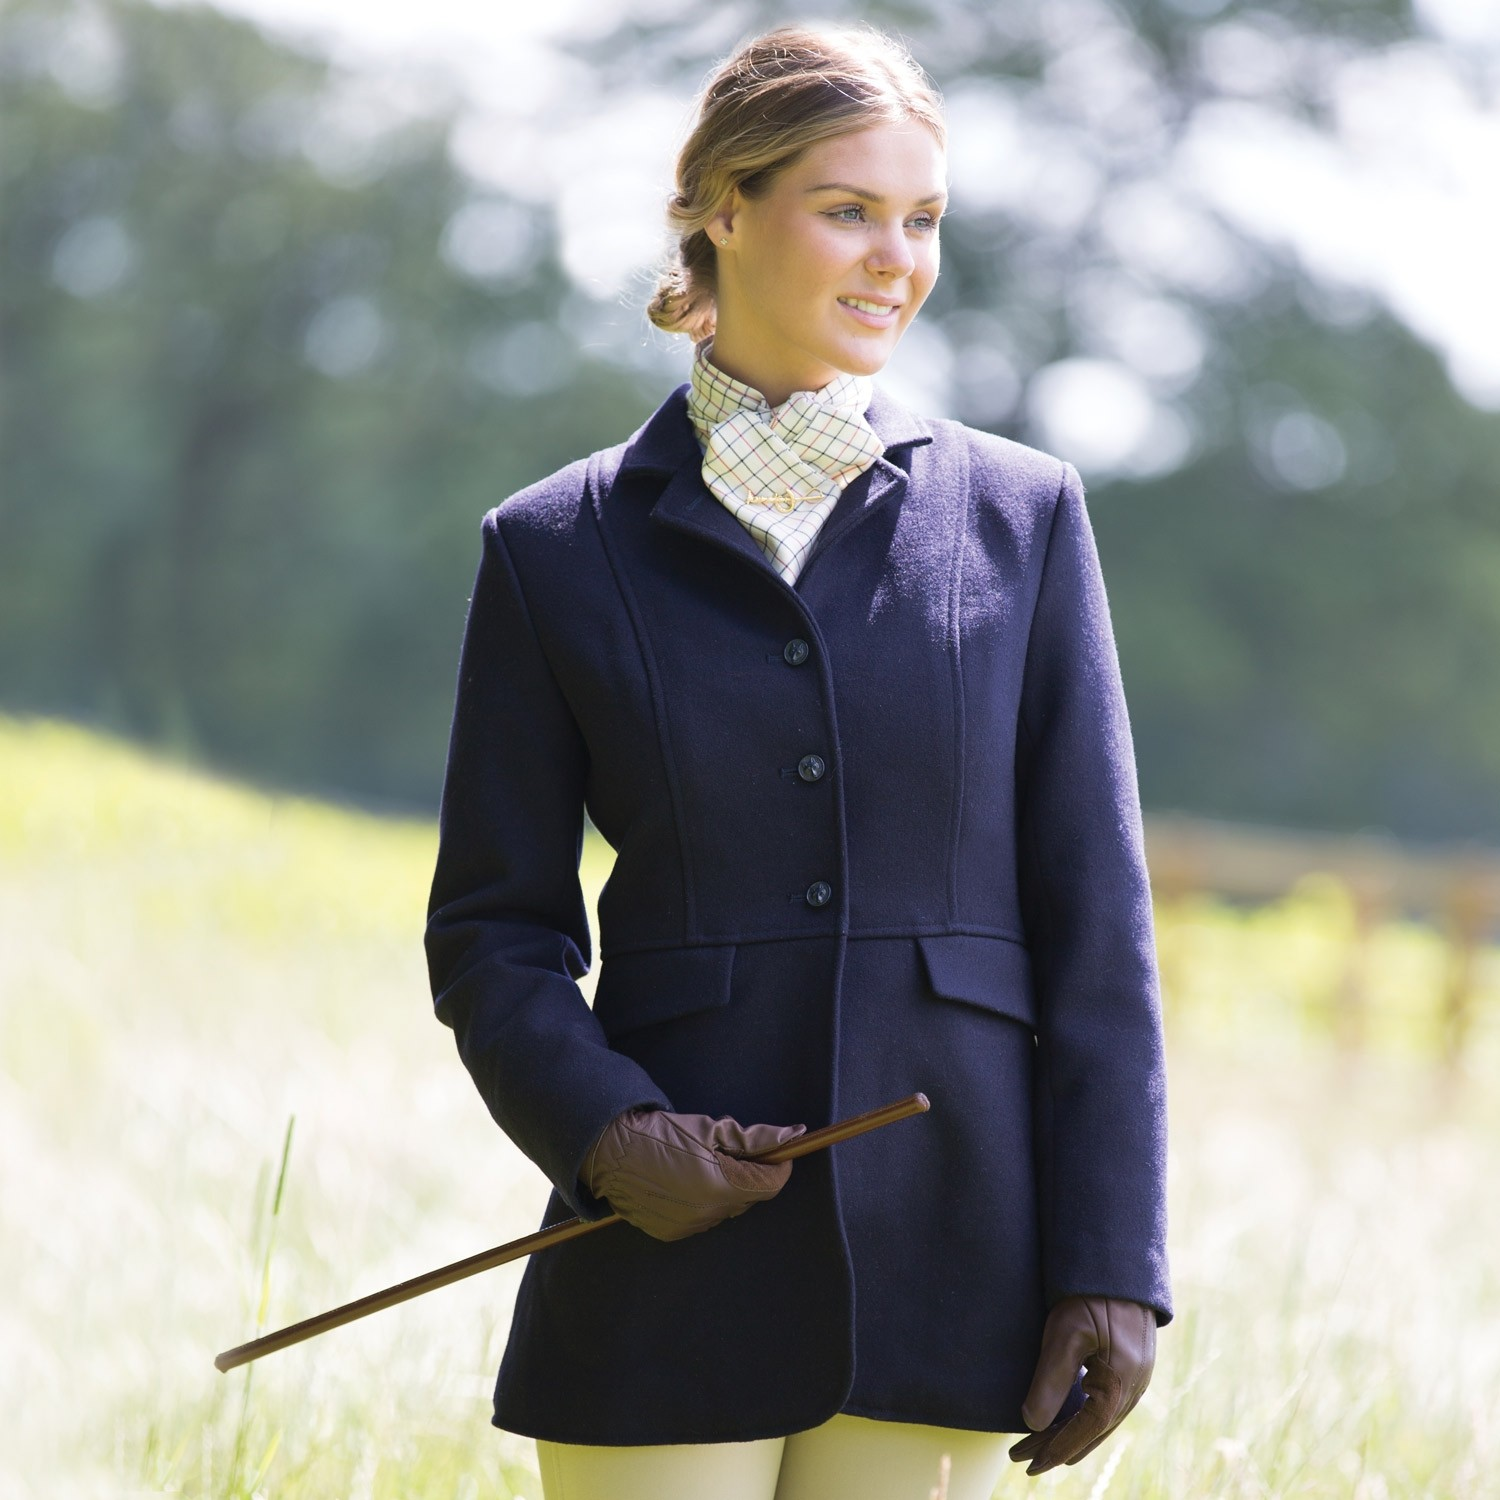 Equetech Ladies Hunt Frock Wool Coat  - Thomas Irving's equestrian and accessories store  Equetech Ladies Hunt Frock Wool Coat